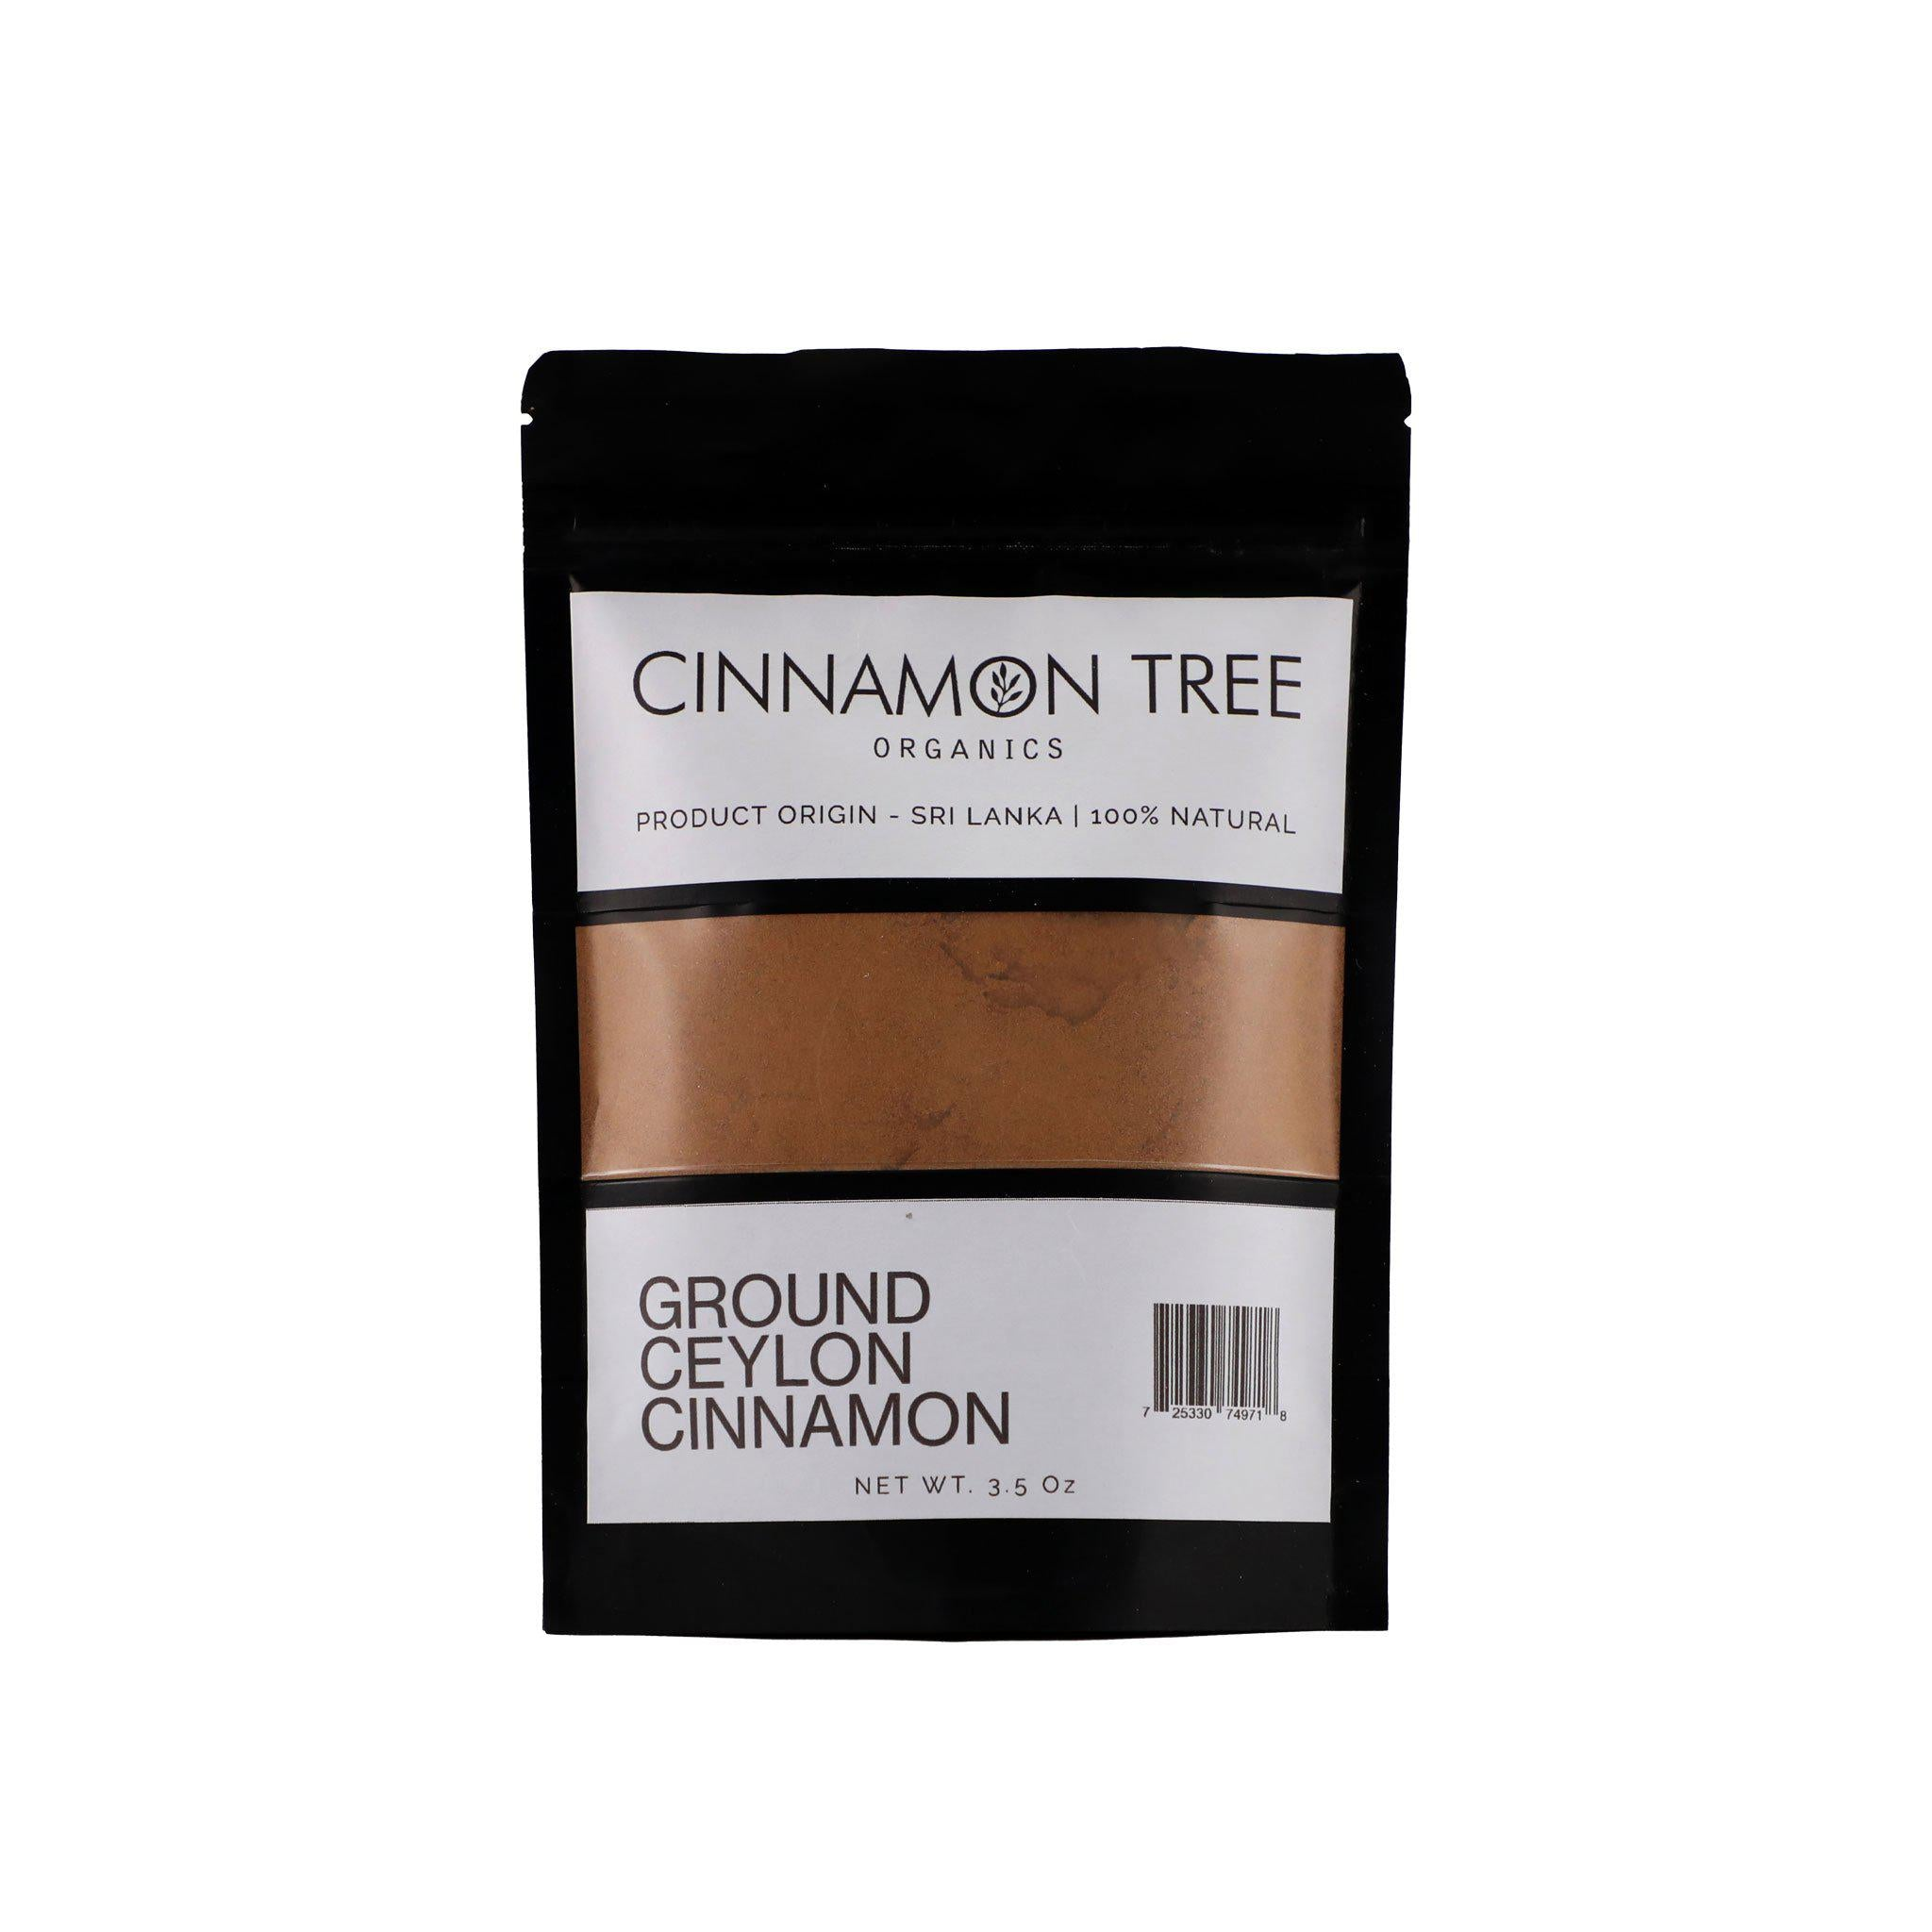 Cinnamon Tree Organics single origin ground Ceylon cinnamon  3.5Oz